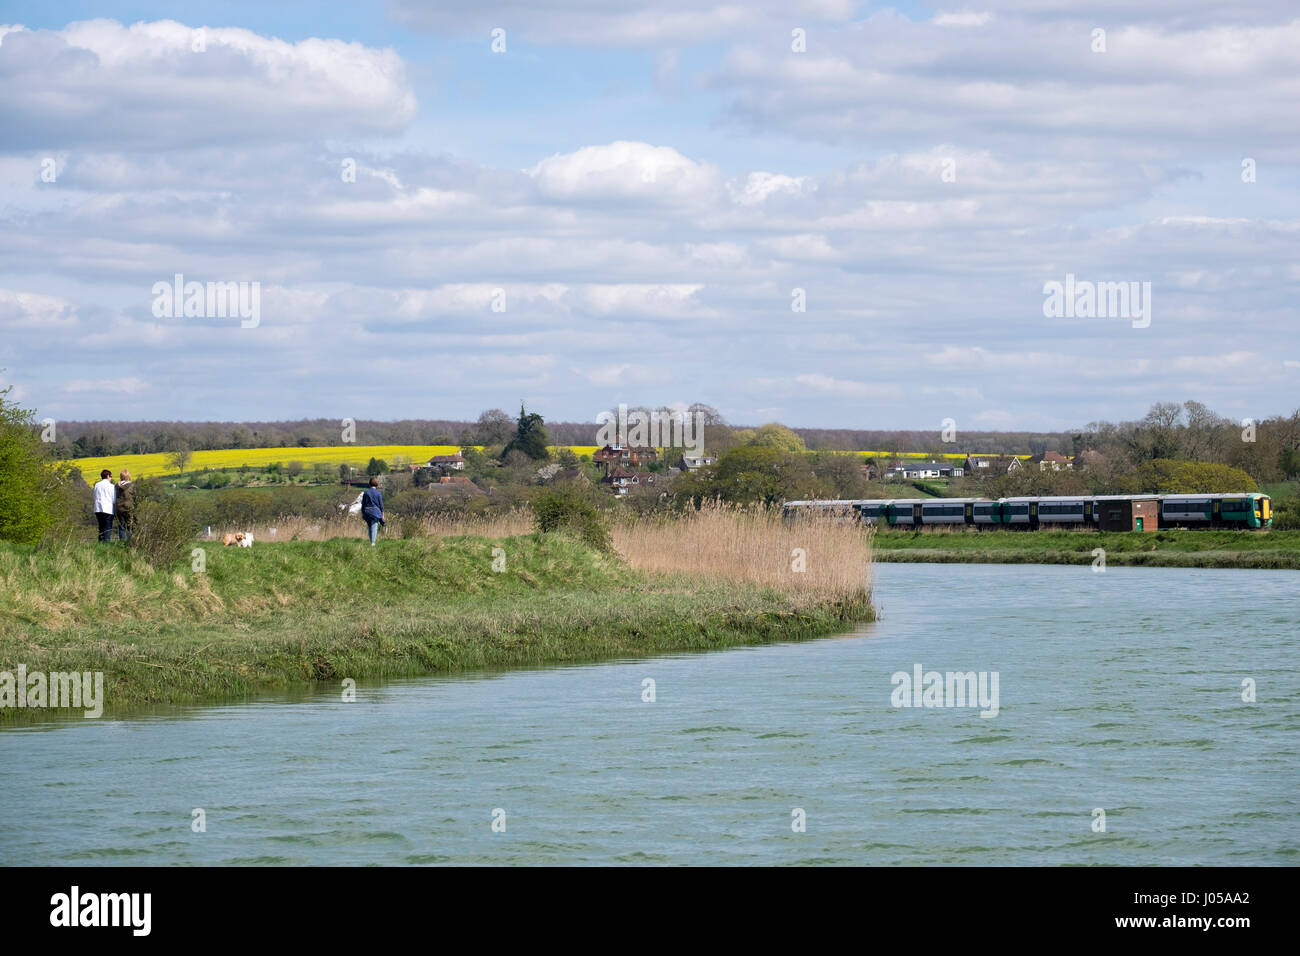 Arundel, UK. 10th April 2017. UK Weather. With temperatures reaching the mid to high teens, the boats moored on - Stock Image